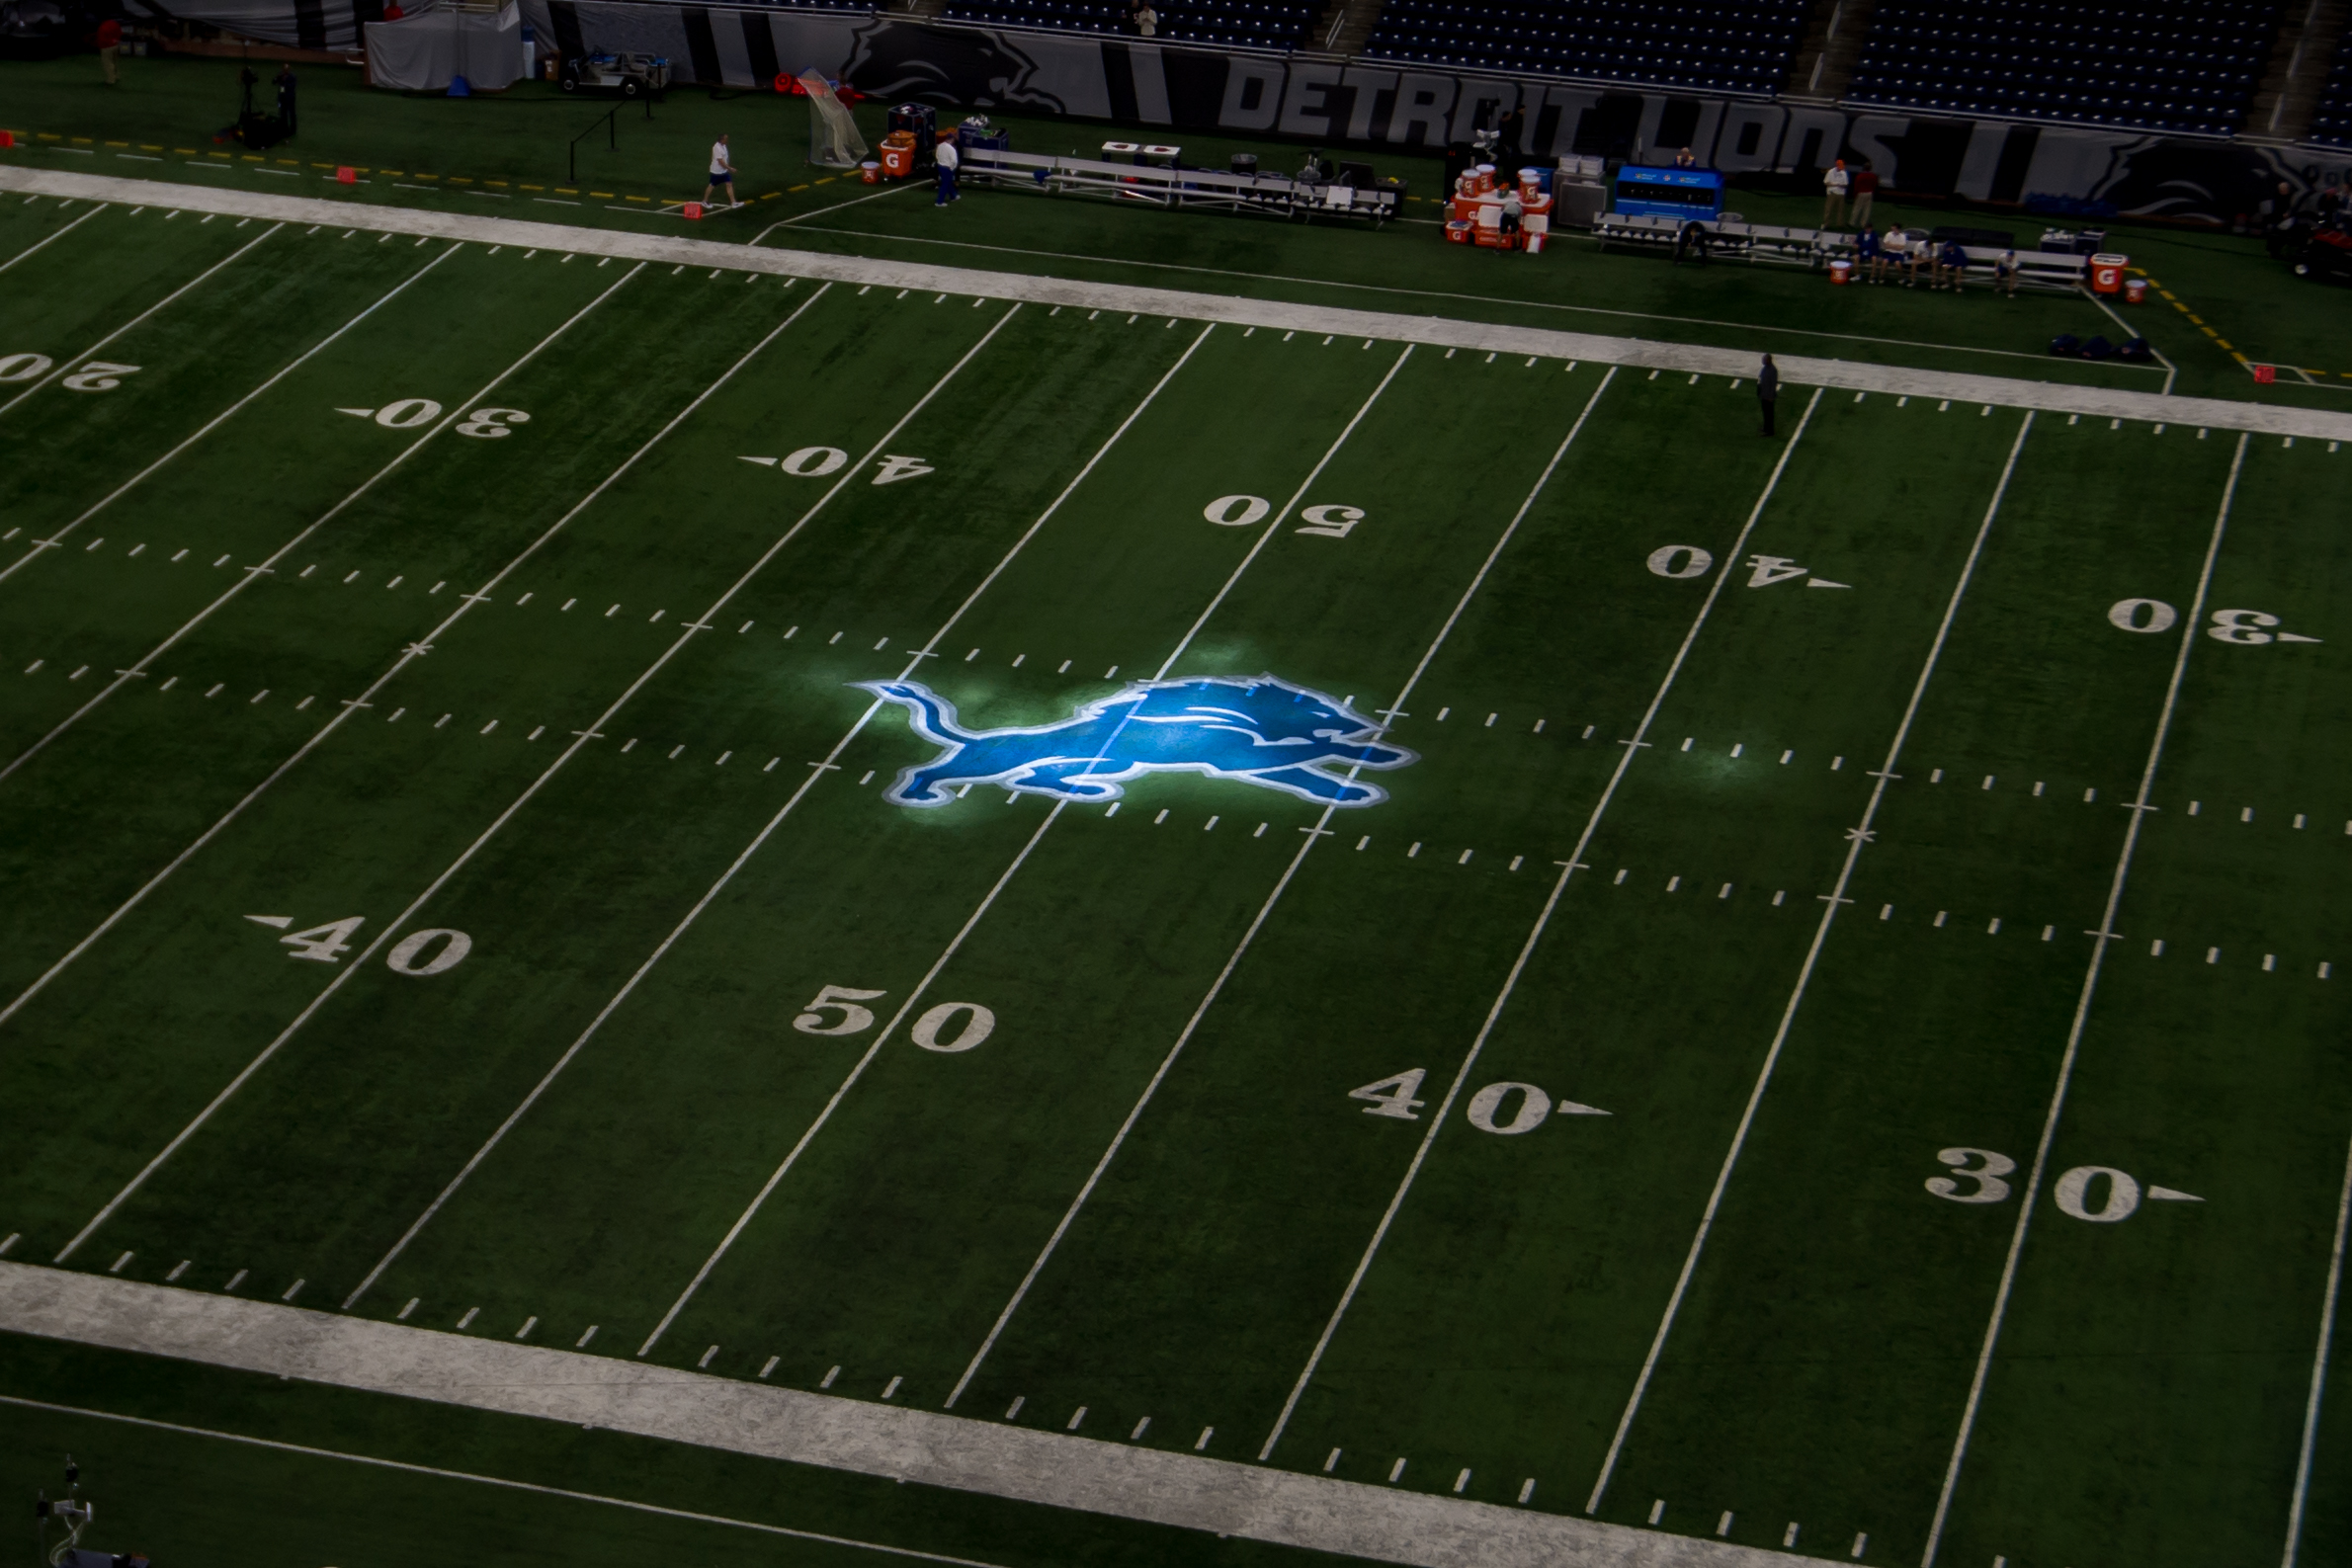 NFL: DEC 16 Bears at Lions